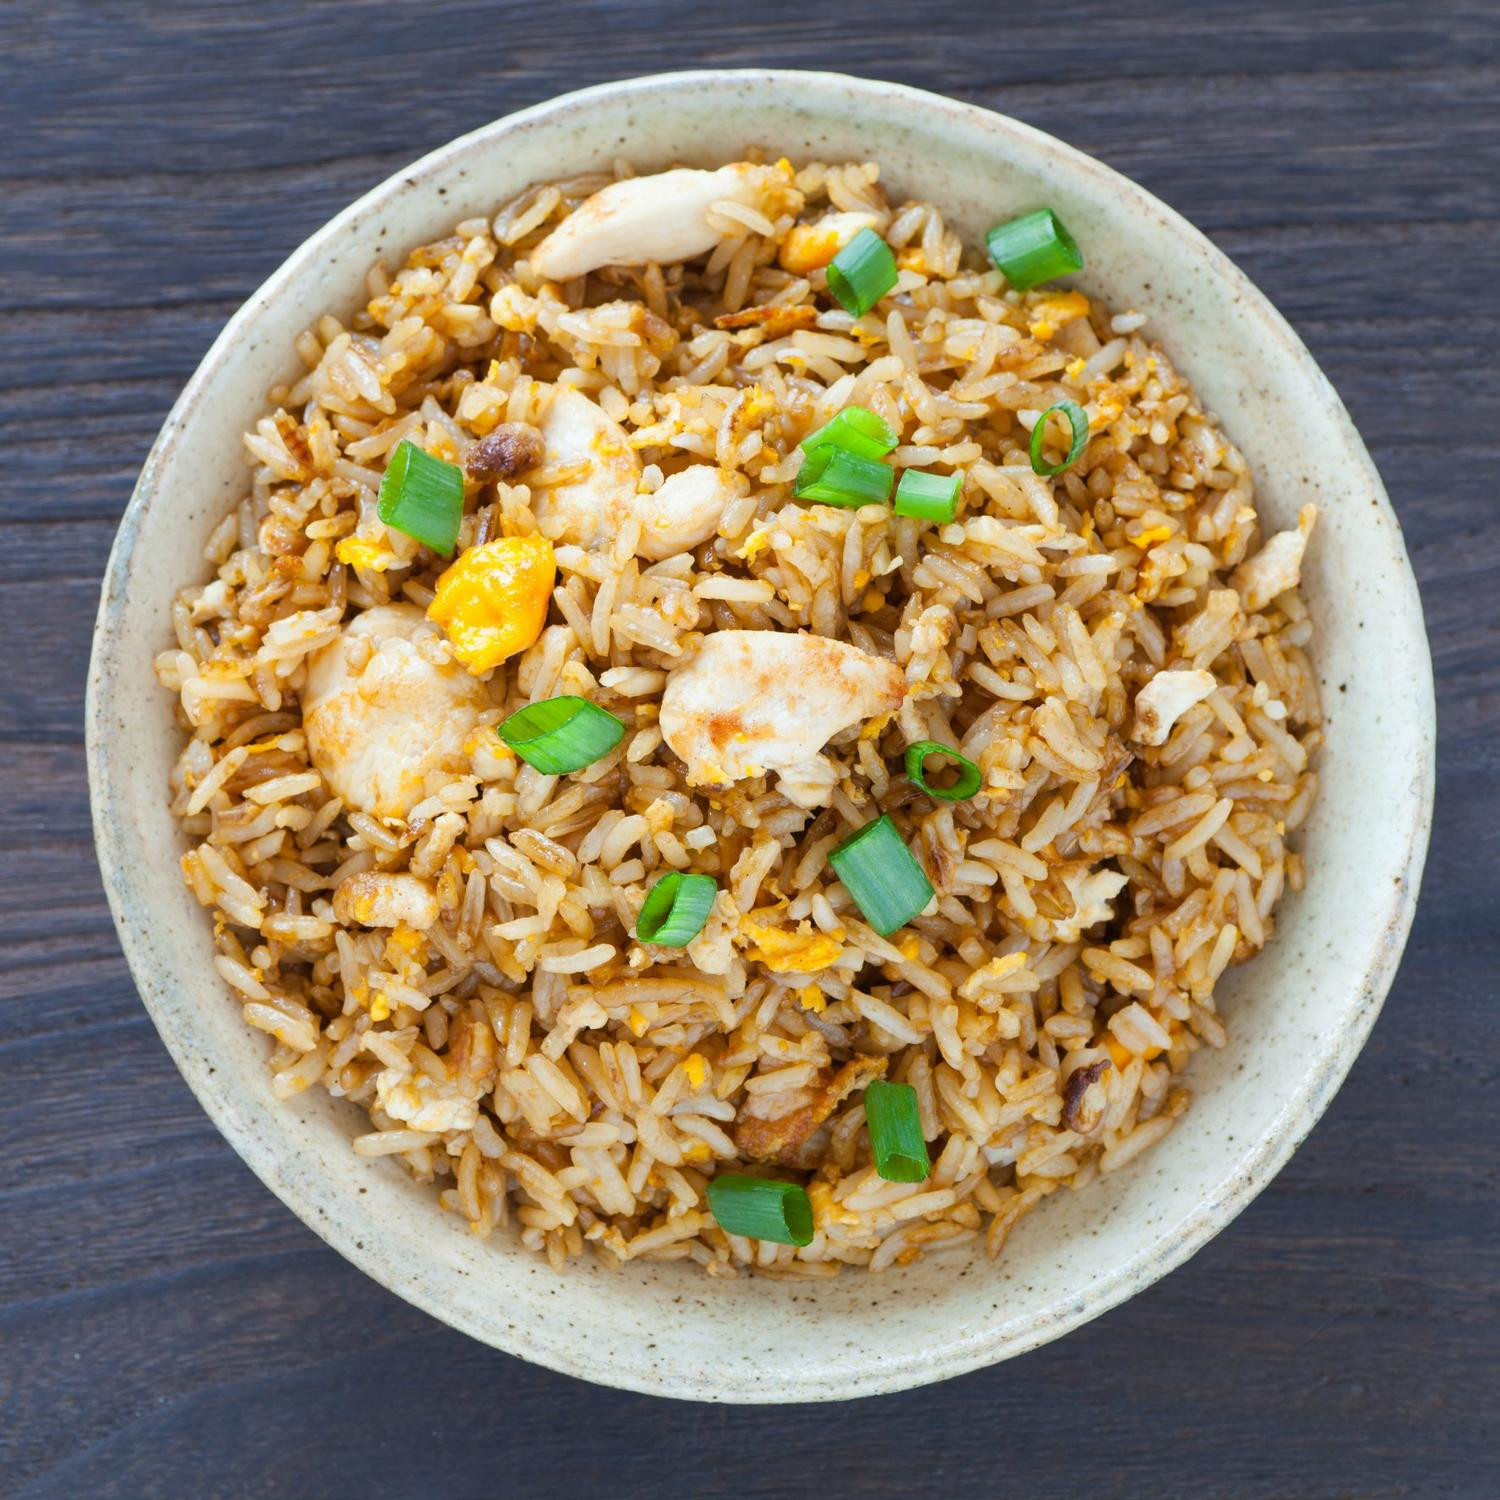 Healthy Fried Rice Recipe  A Healthy Fried Rice Recipe That Every Fit Girl Needs